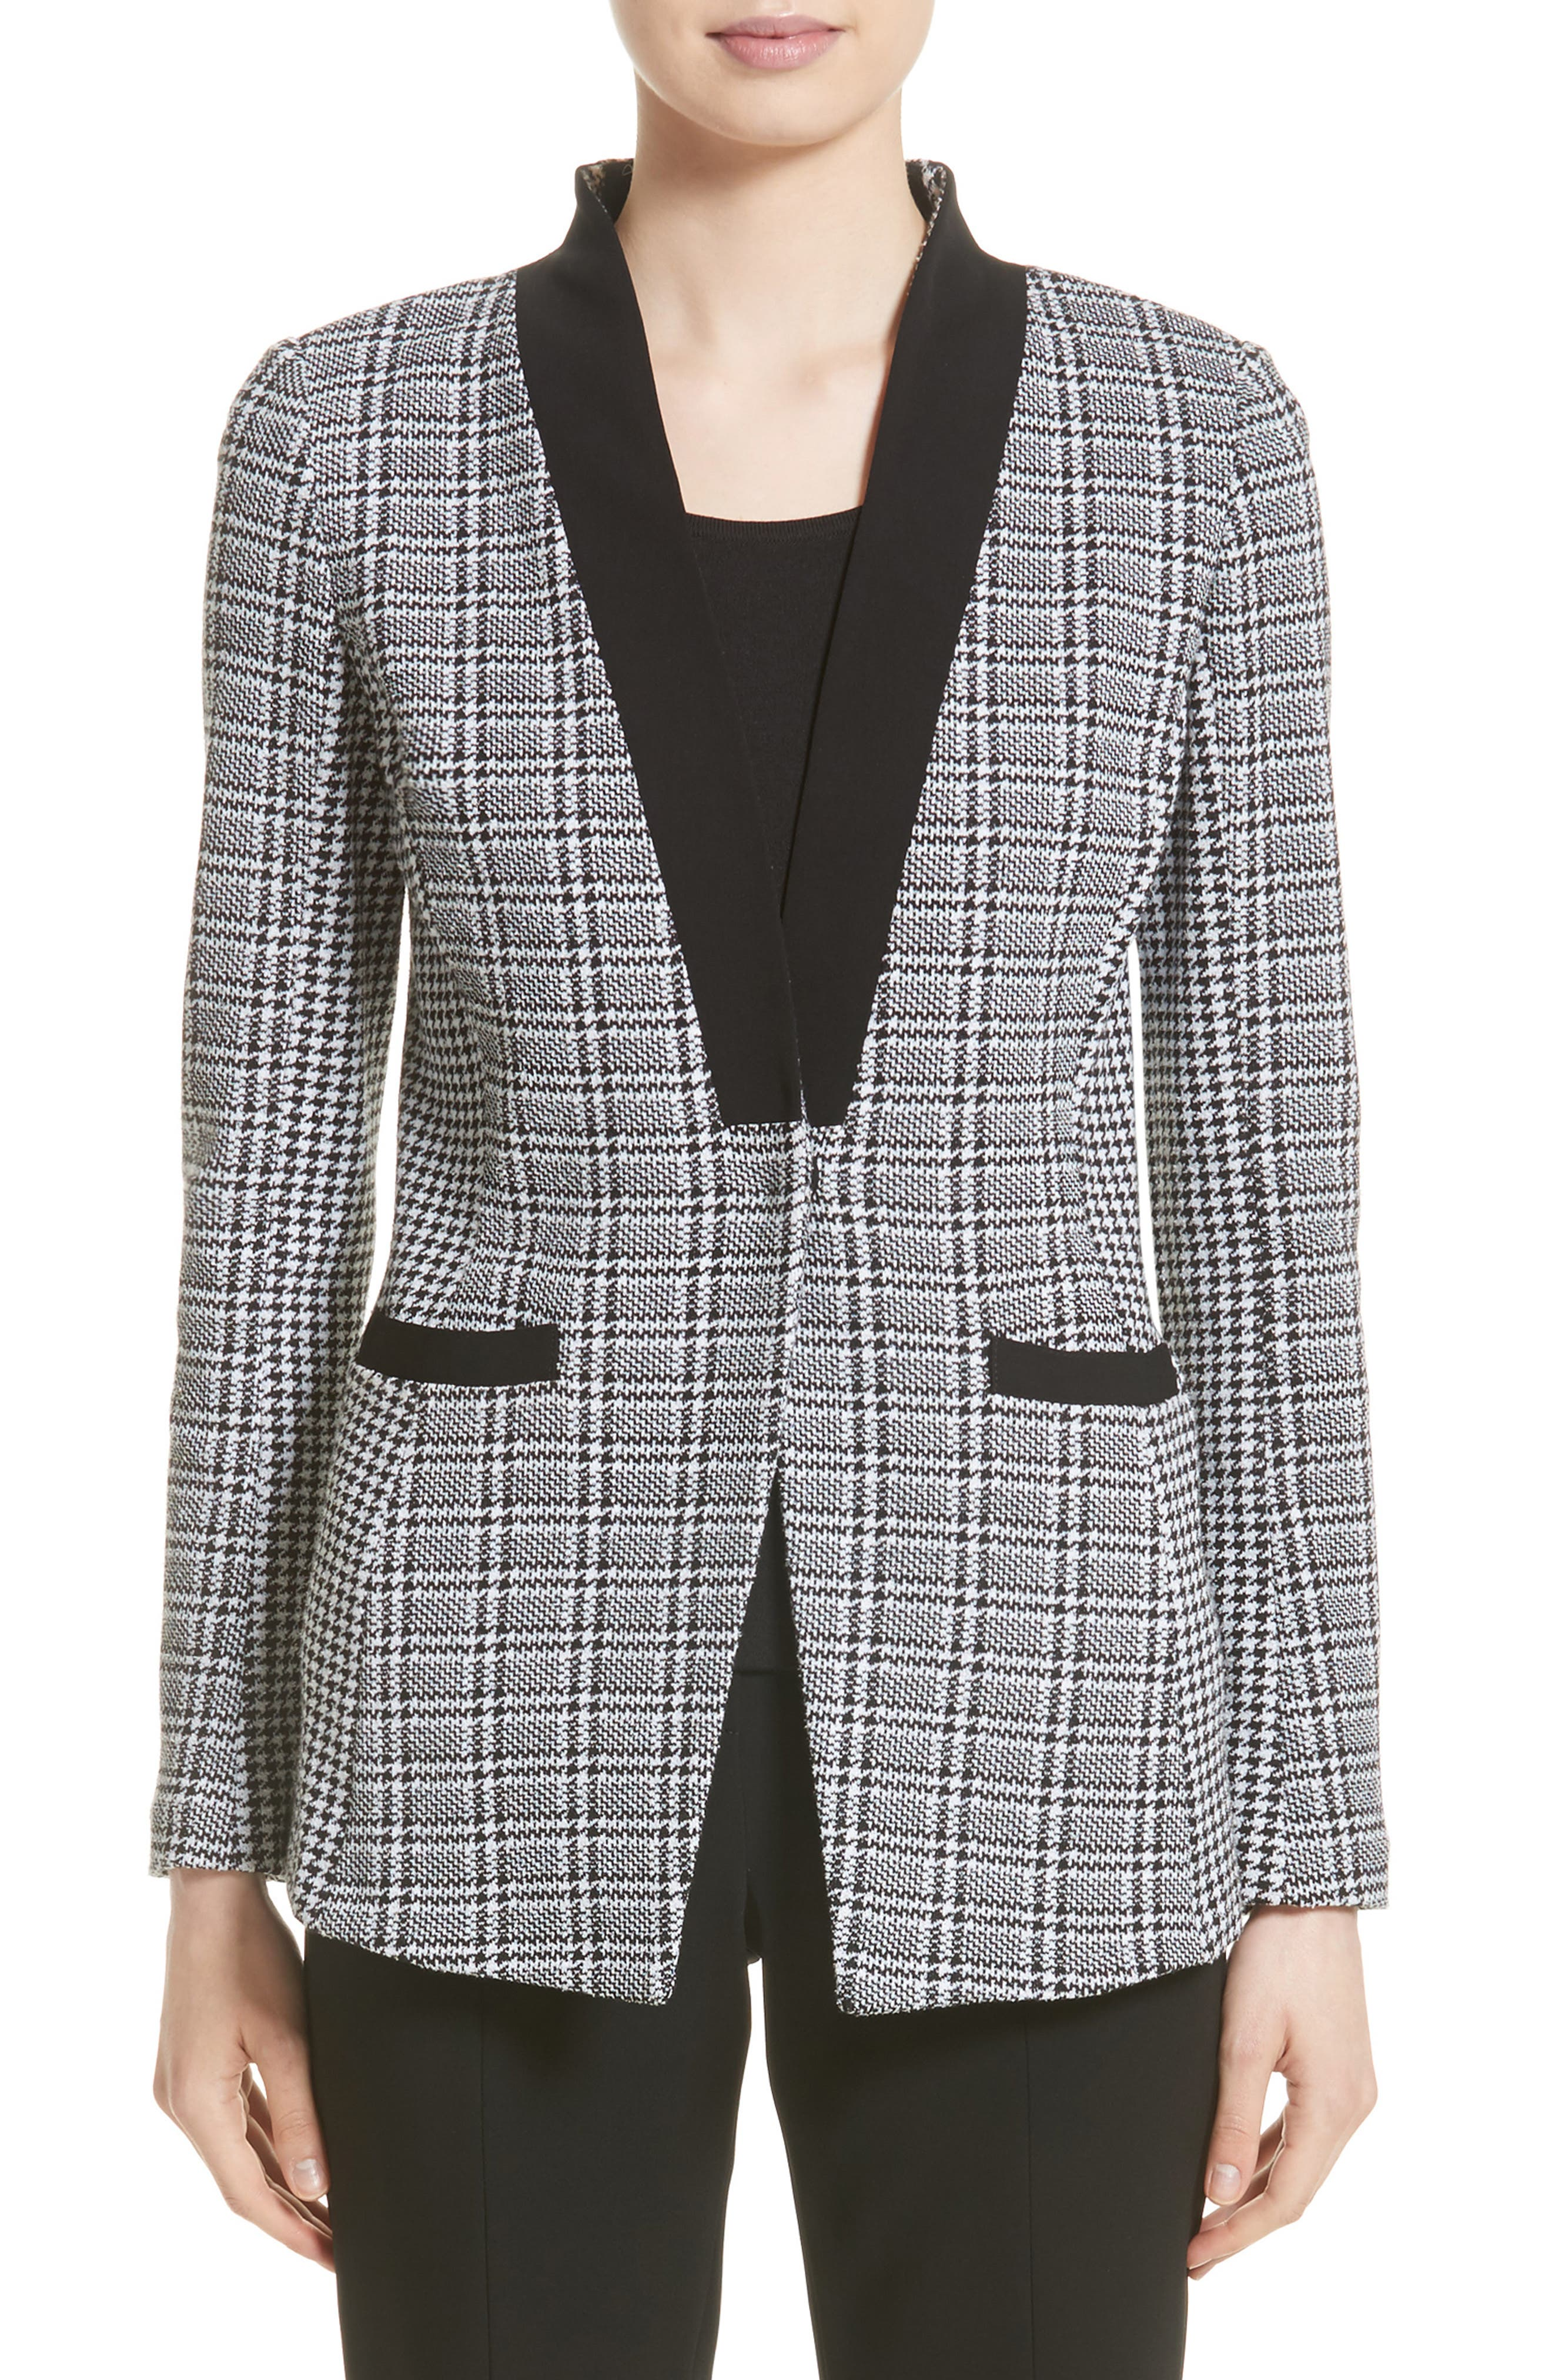 Alternate Image 1 Selected - St. John Collection Mini Houndstooth Plaid Jacket